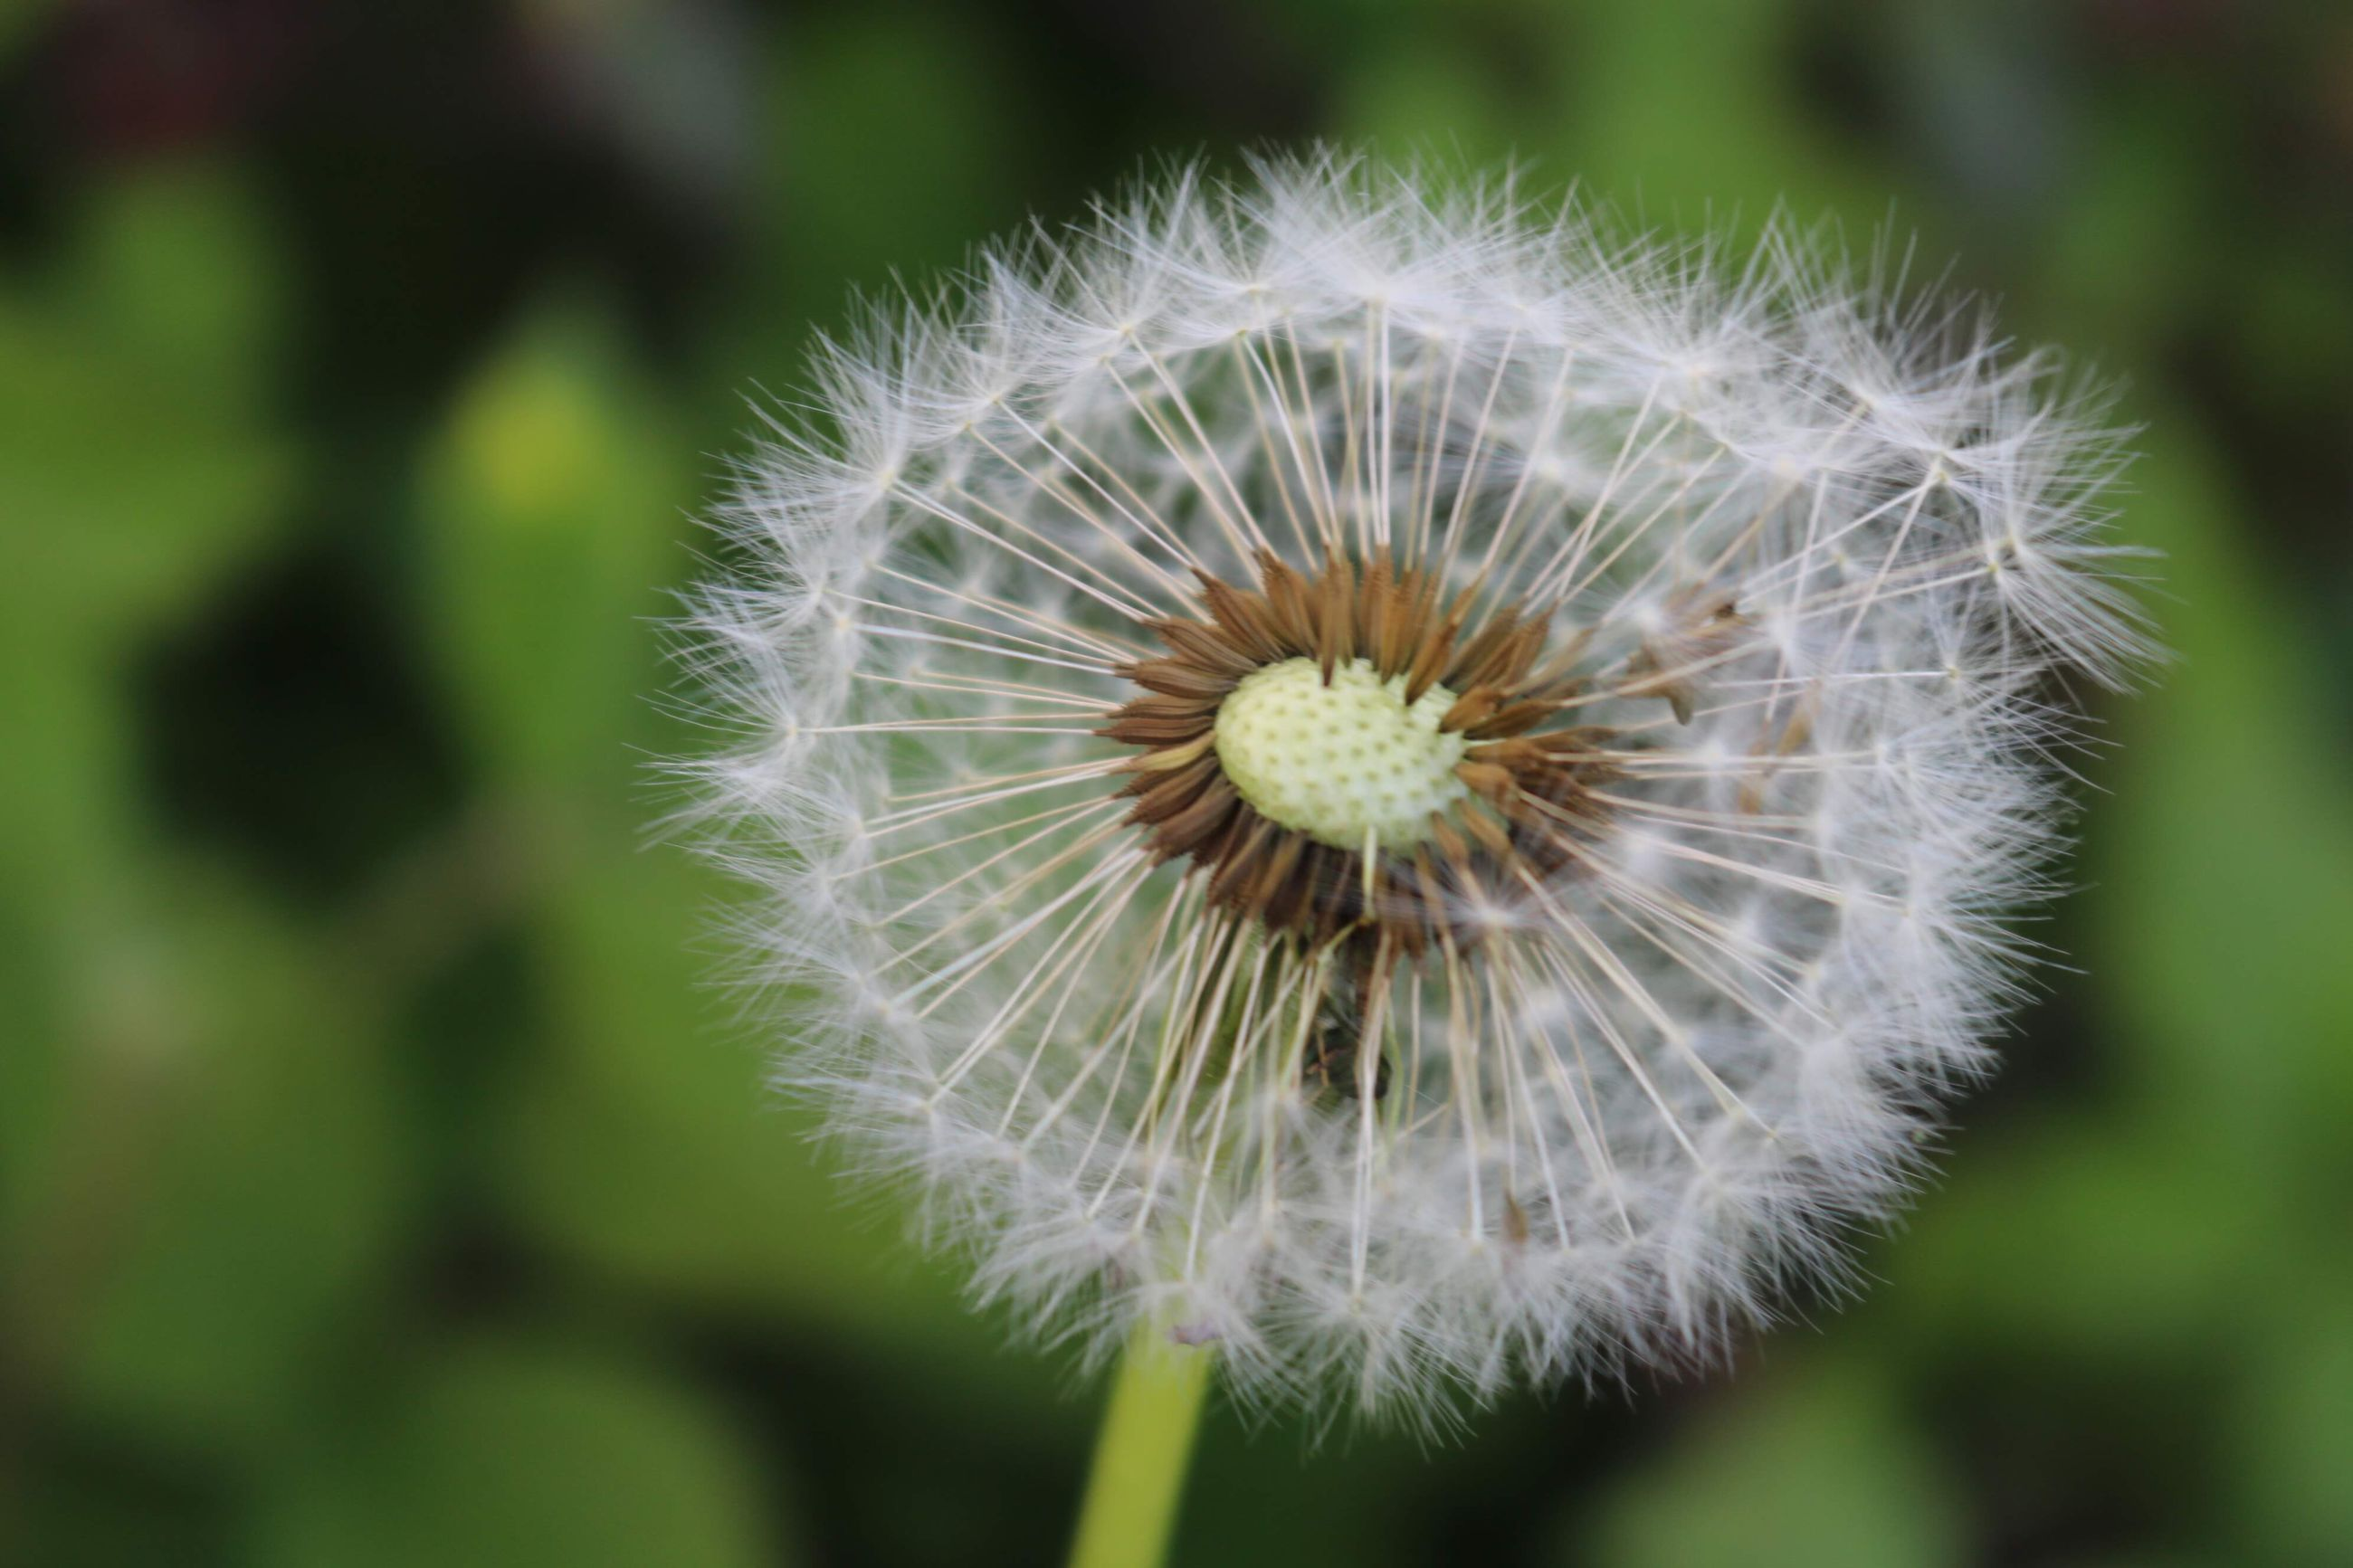 CLOSE-UP OF DANDELION FLOWER OUTDOORS